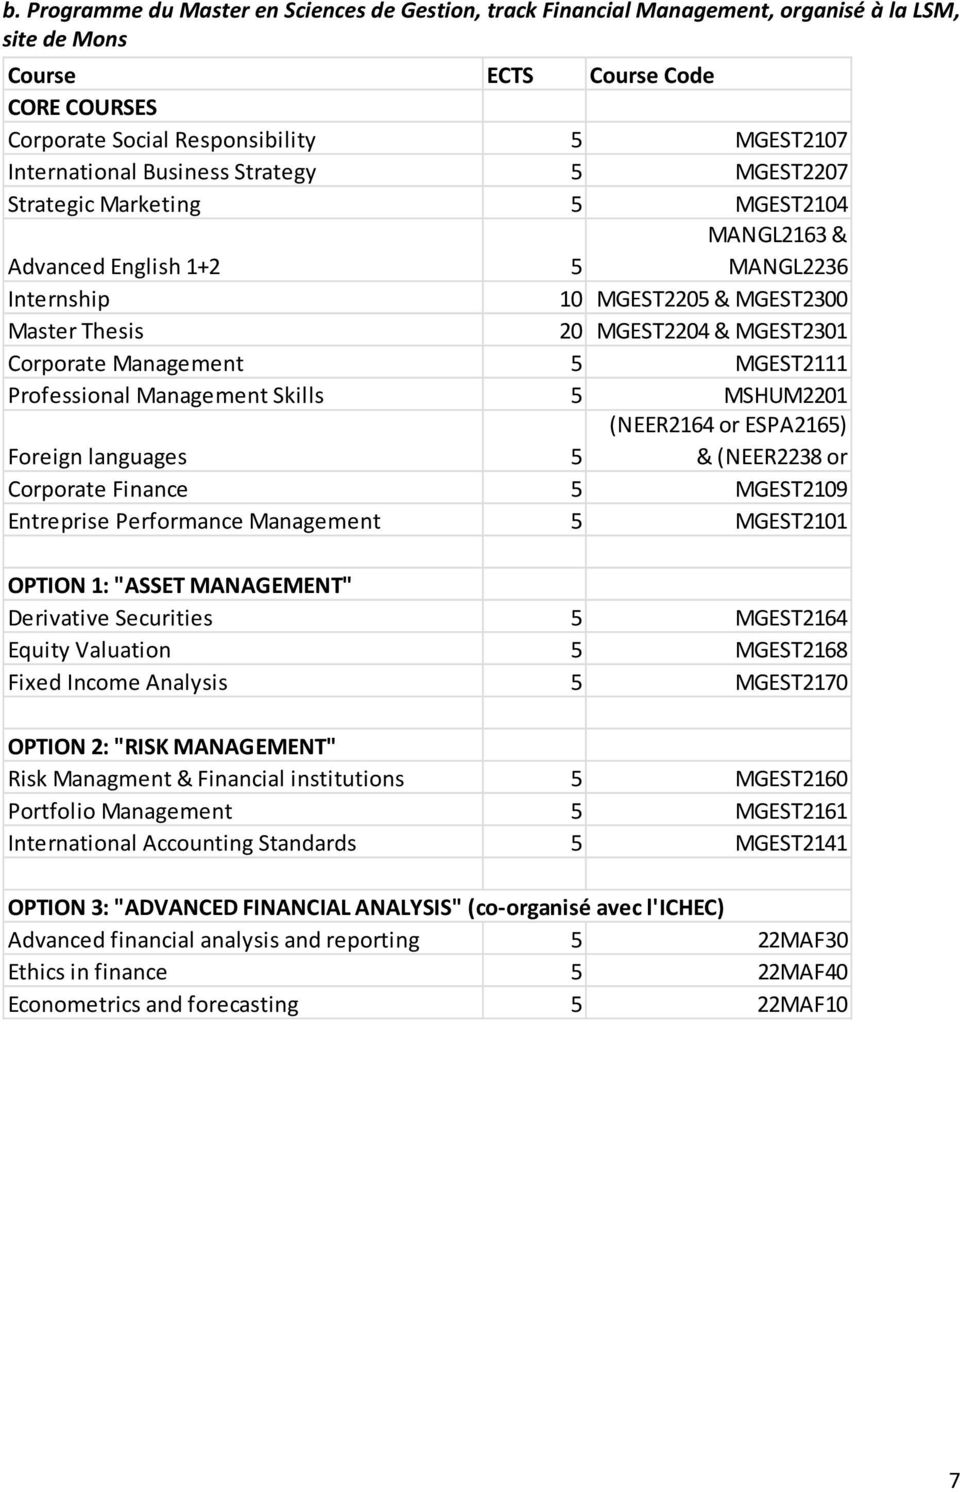 Corporate Management 5 MGEST2111 Professional Management Skills 5 MSHUM2201 Foreign languages 5 (NEER2164 or ESPA2165) & (NEER2238 or Corporate Finance 5 MGEST2109 Entreprise Performance Management 5